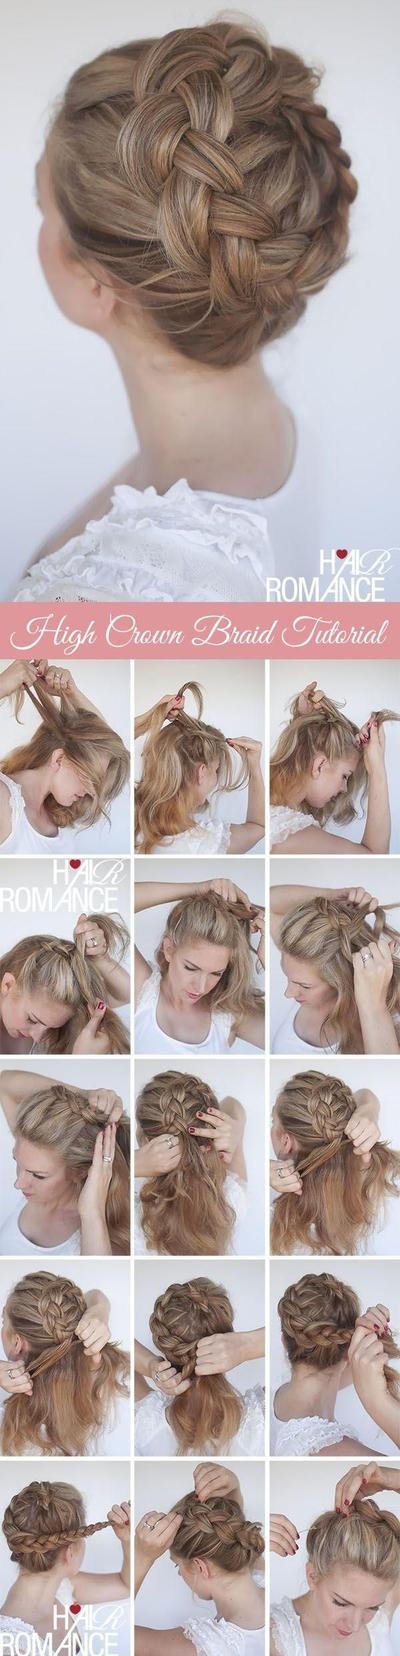 High Crown Braided Style